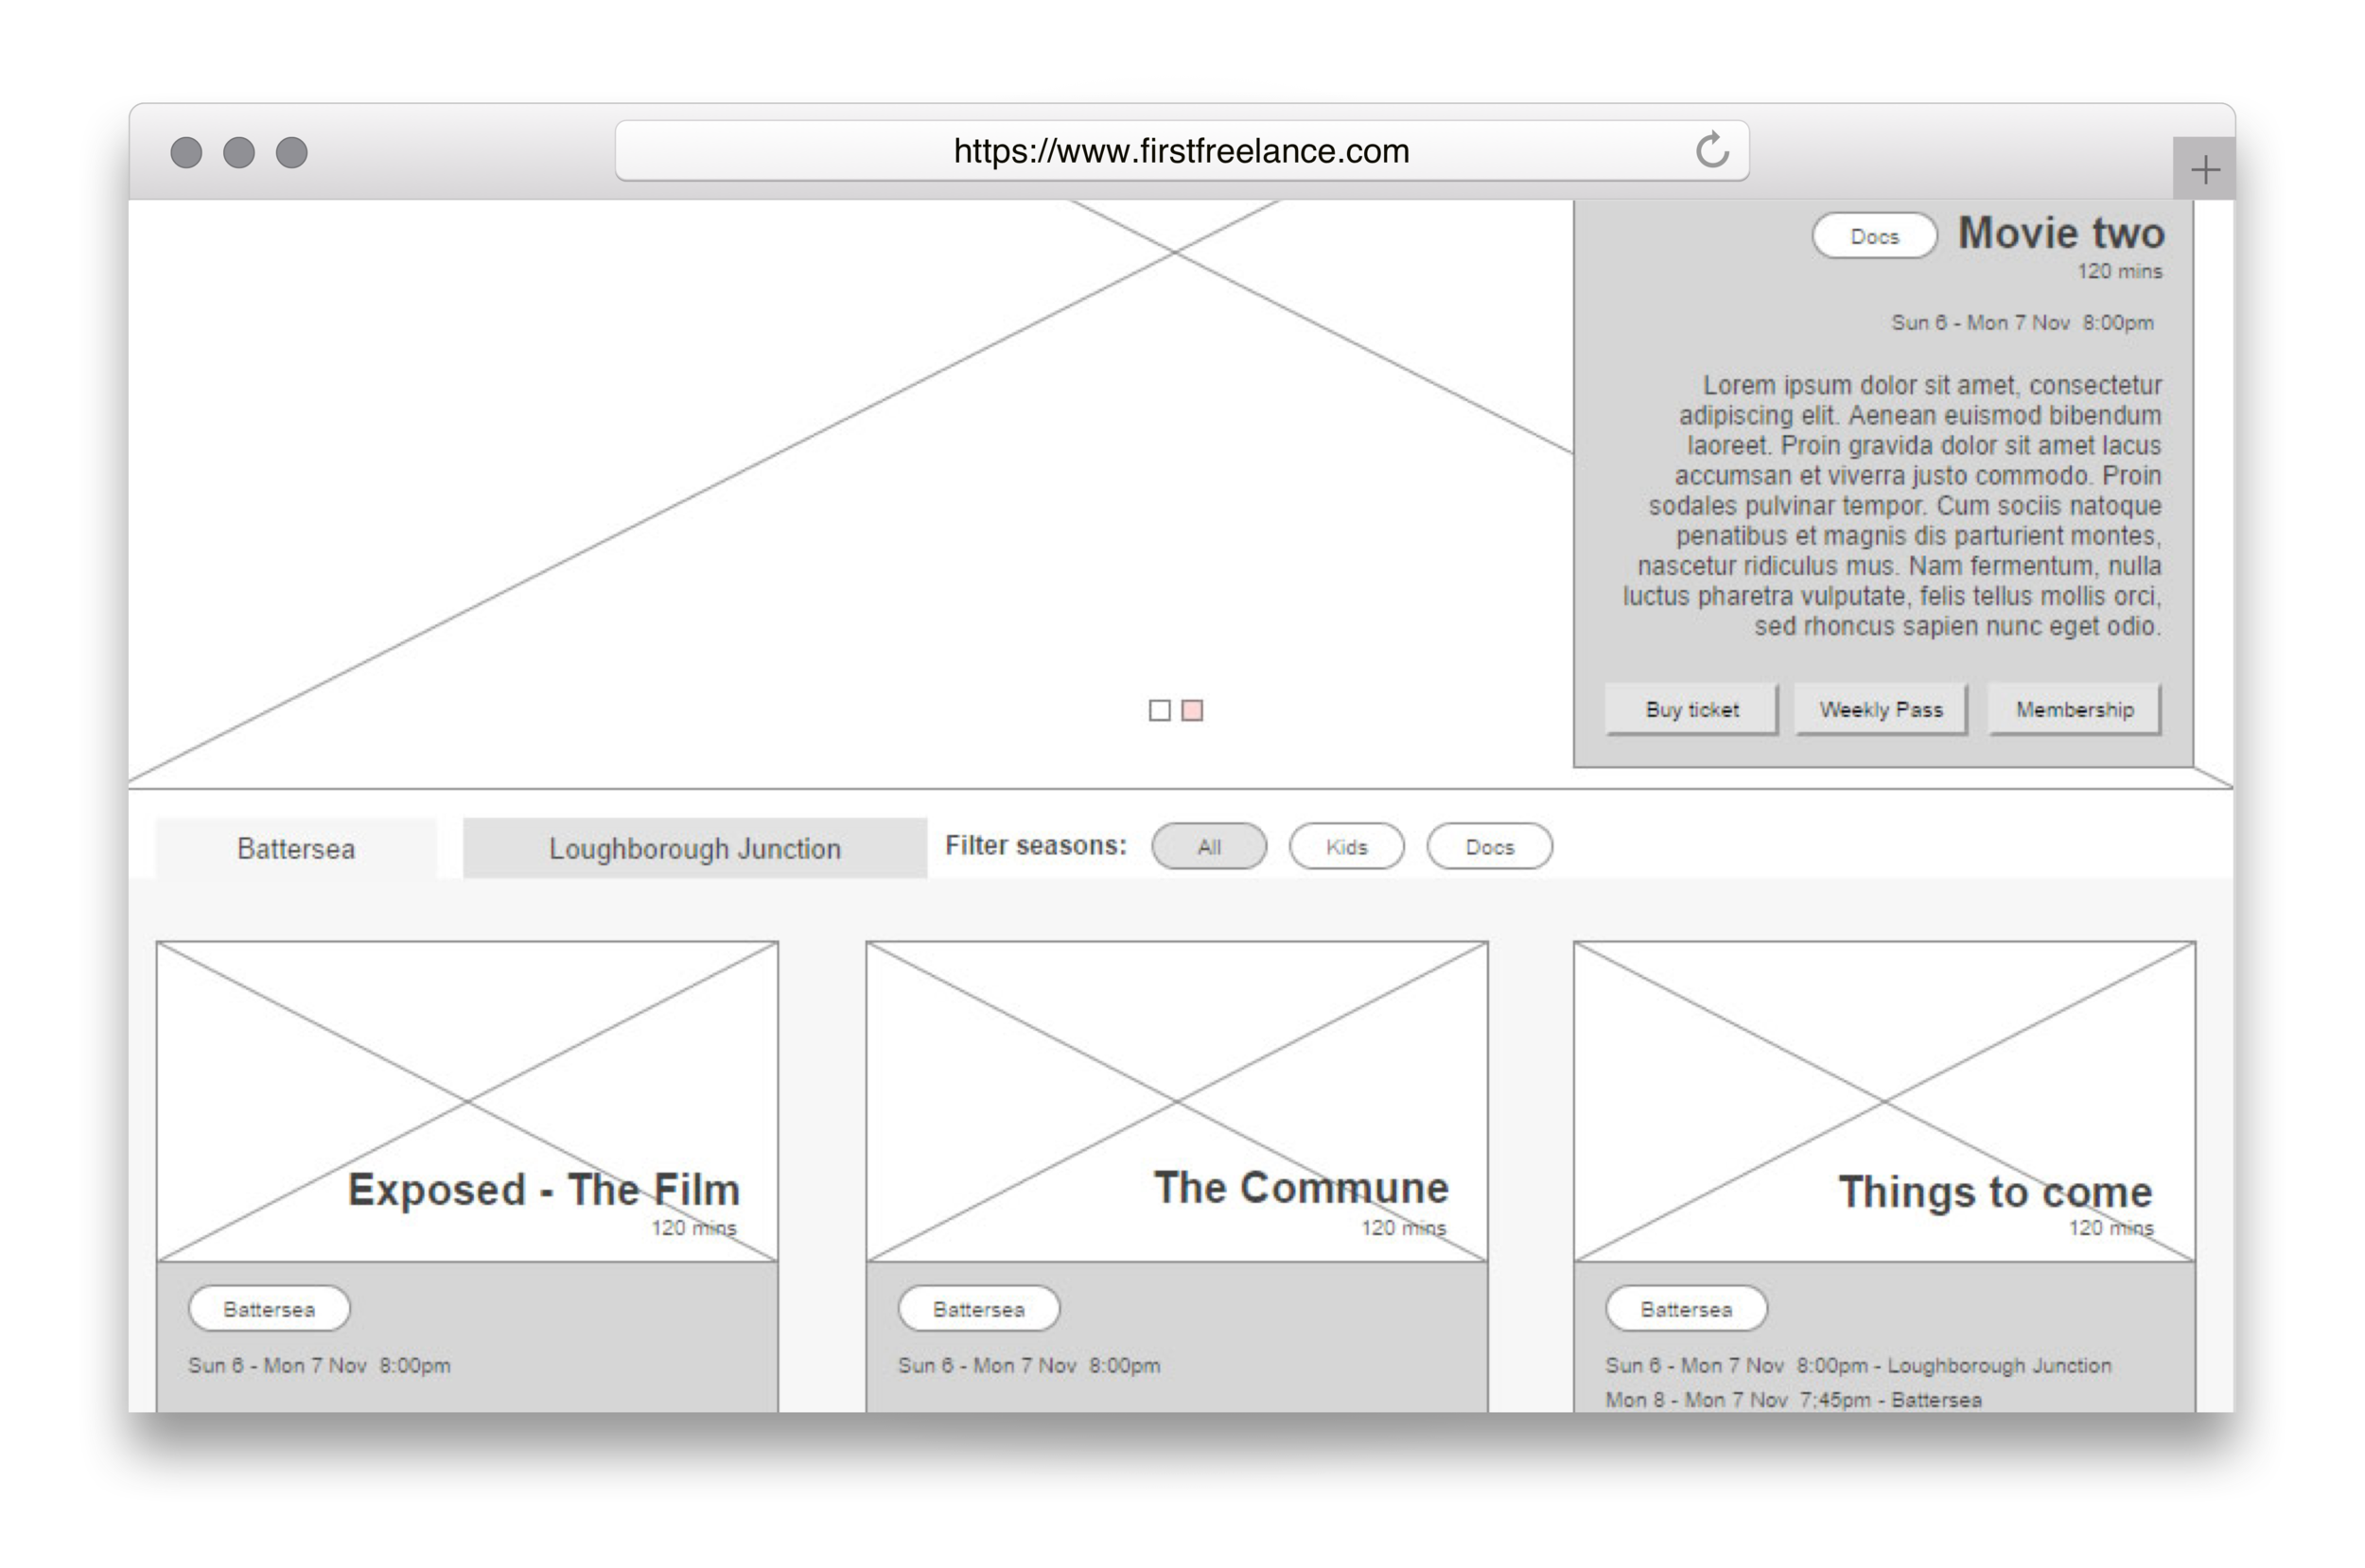 The wireframe of the Whirled Cinema website